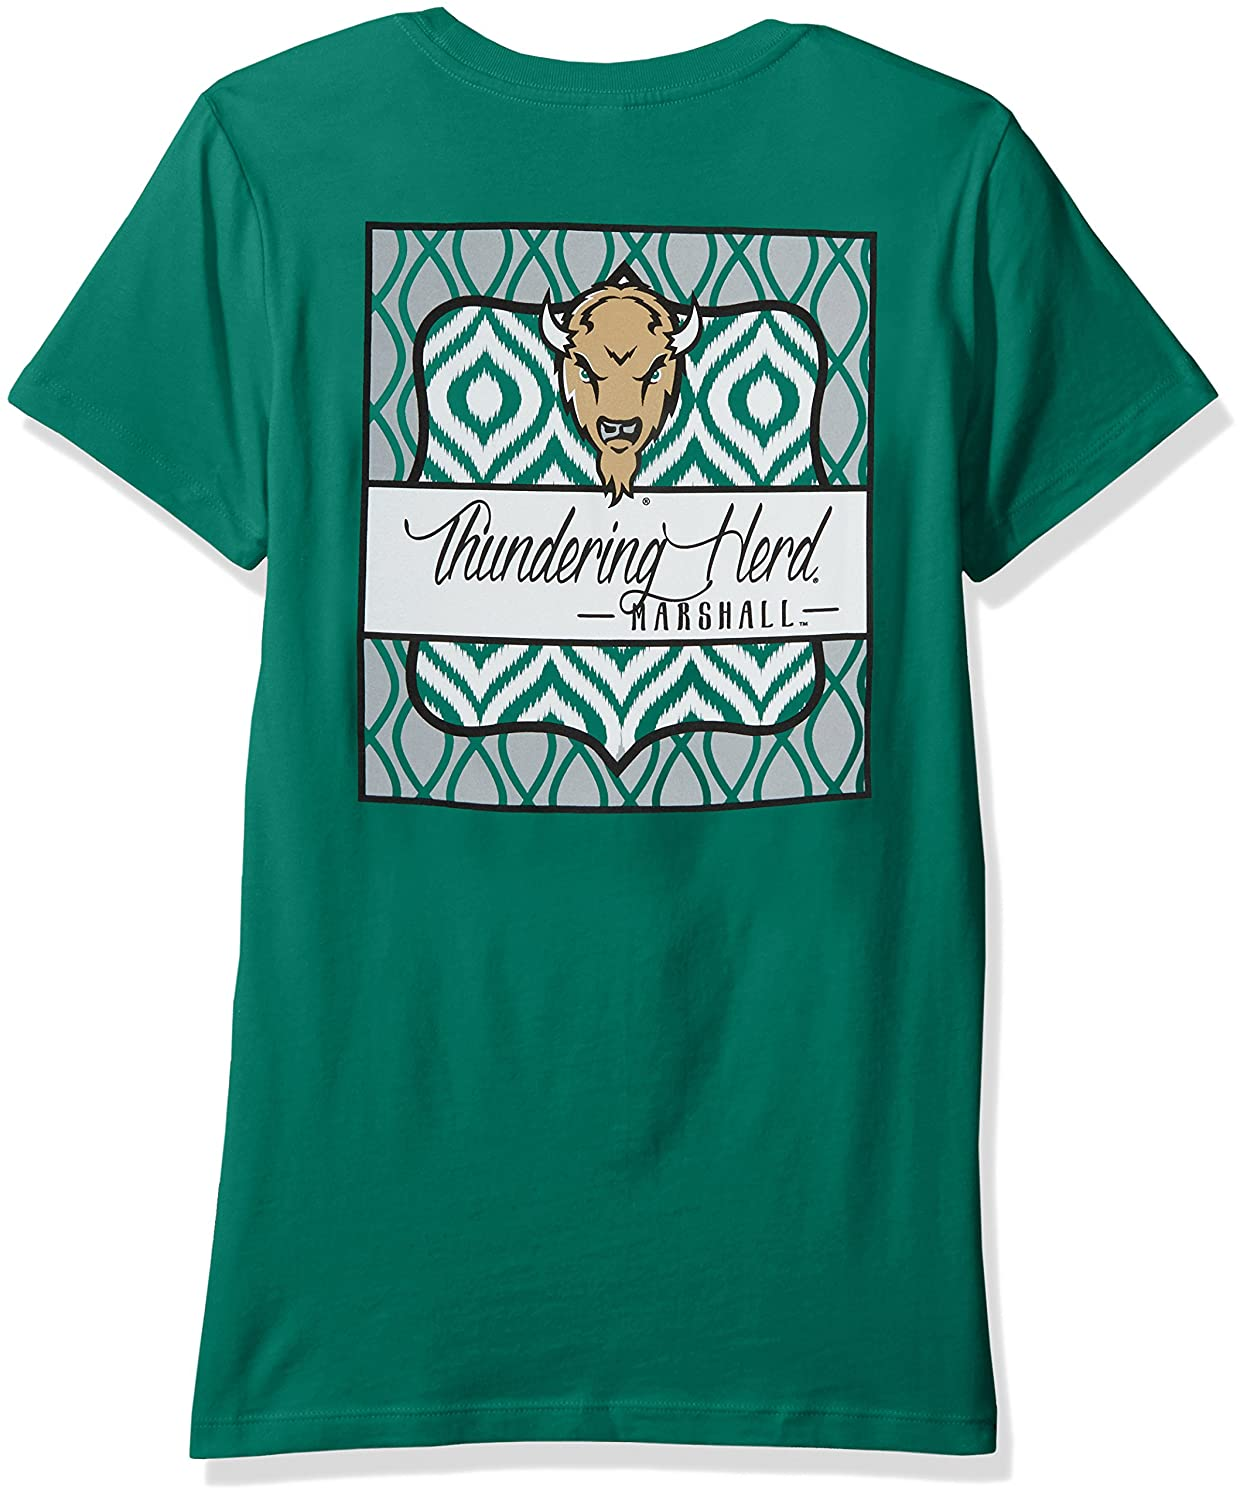 XX-Large,Kelly NCAA Marshall Thundering Herd Womens Double Pattern Scroll Favorite Short sleeve T-Shirt